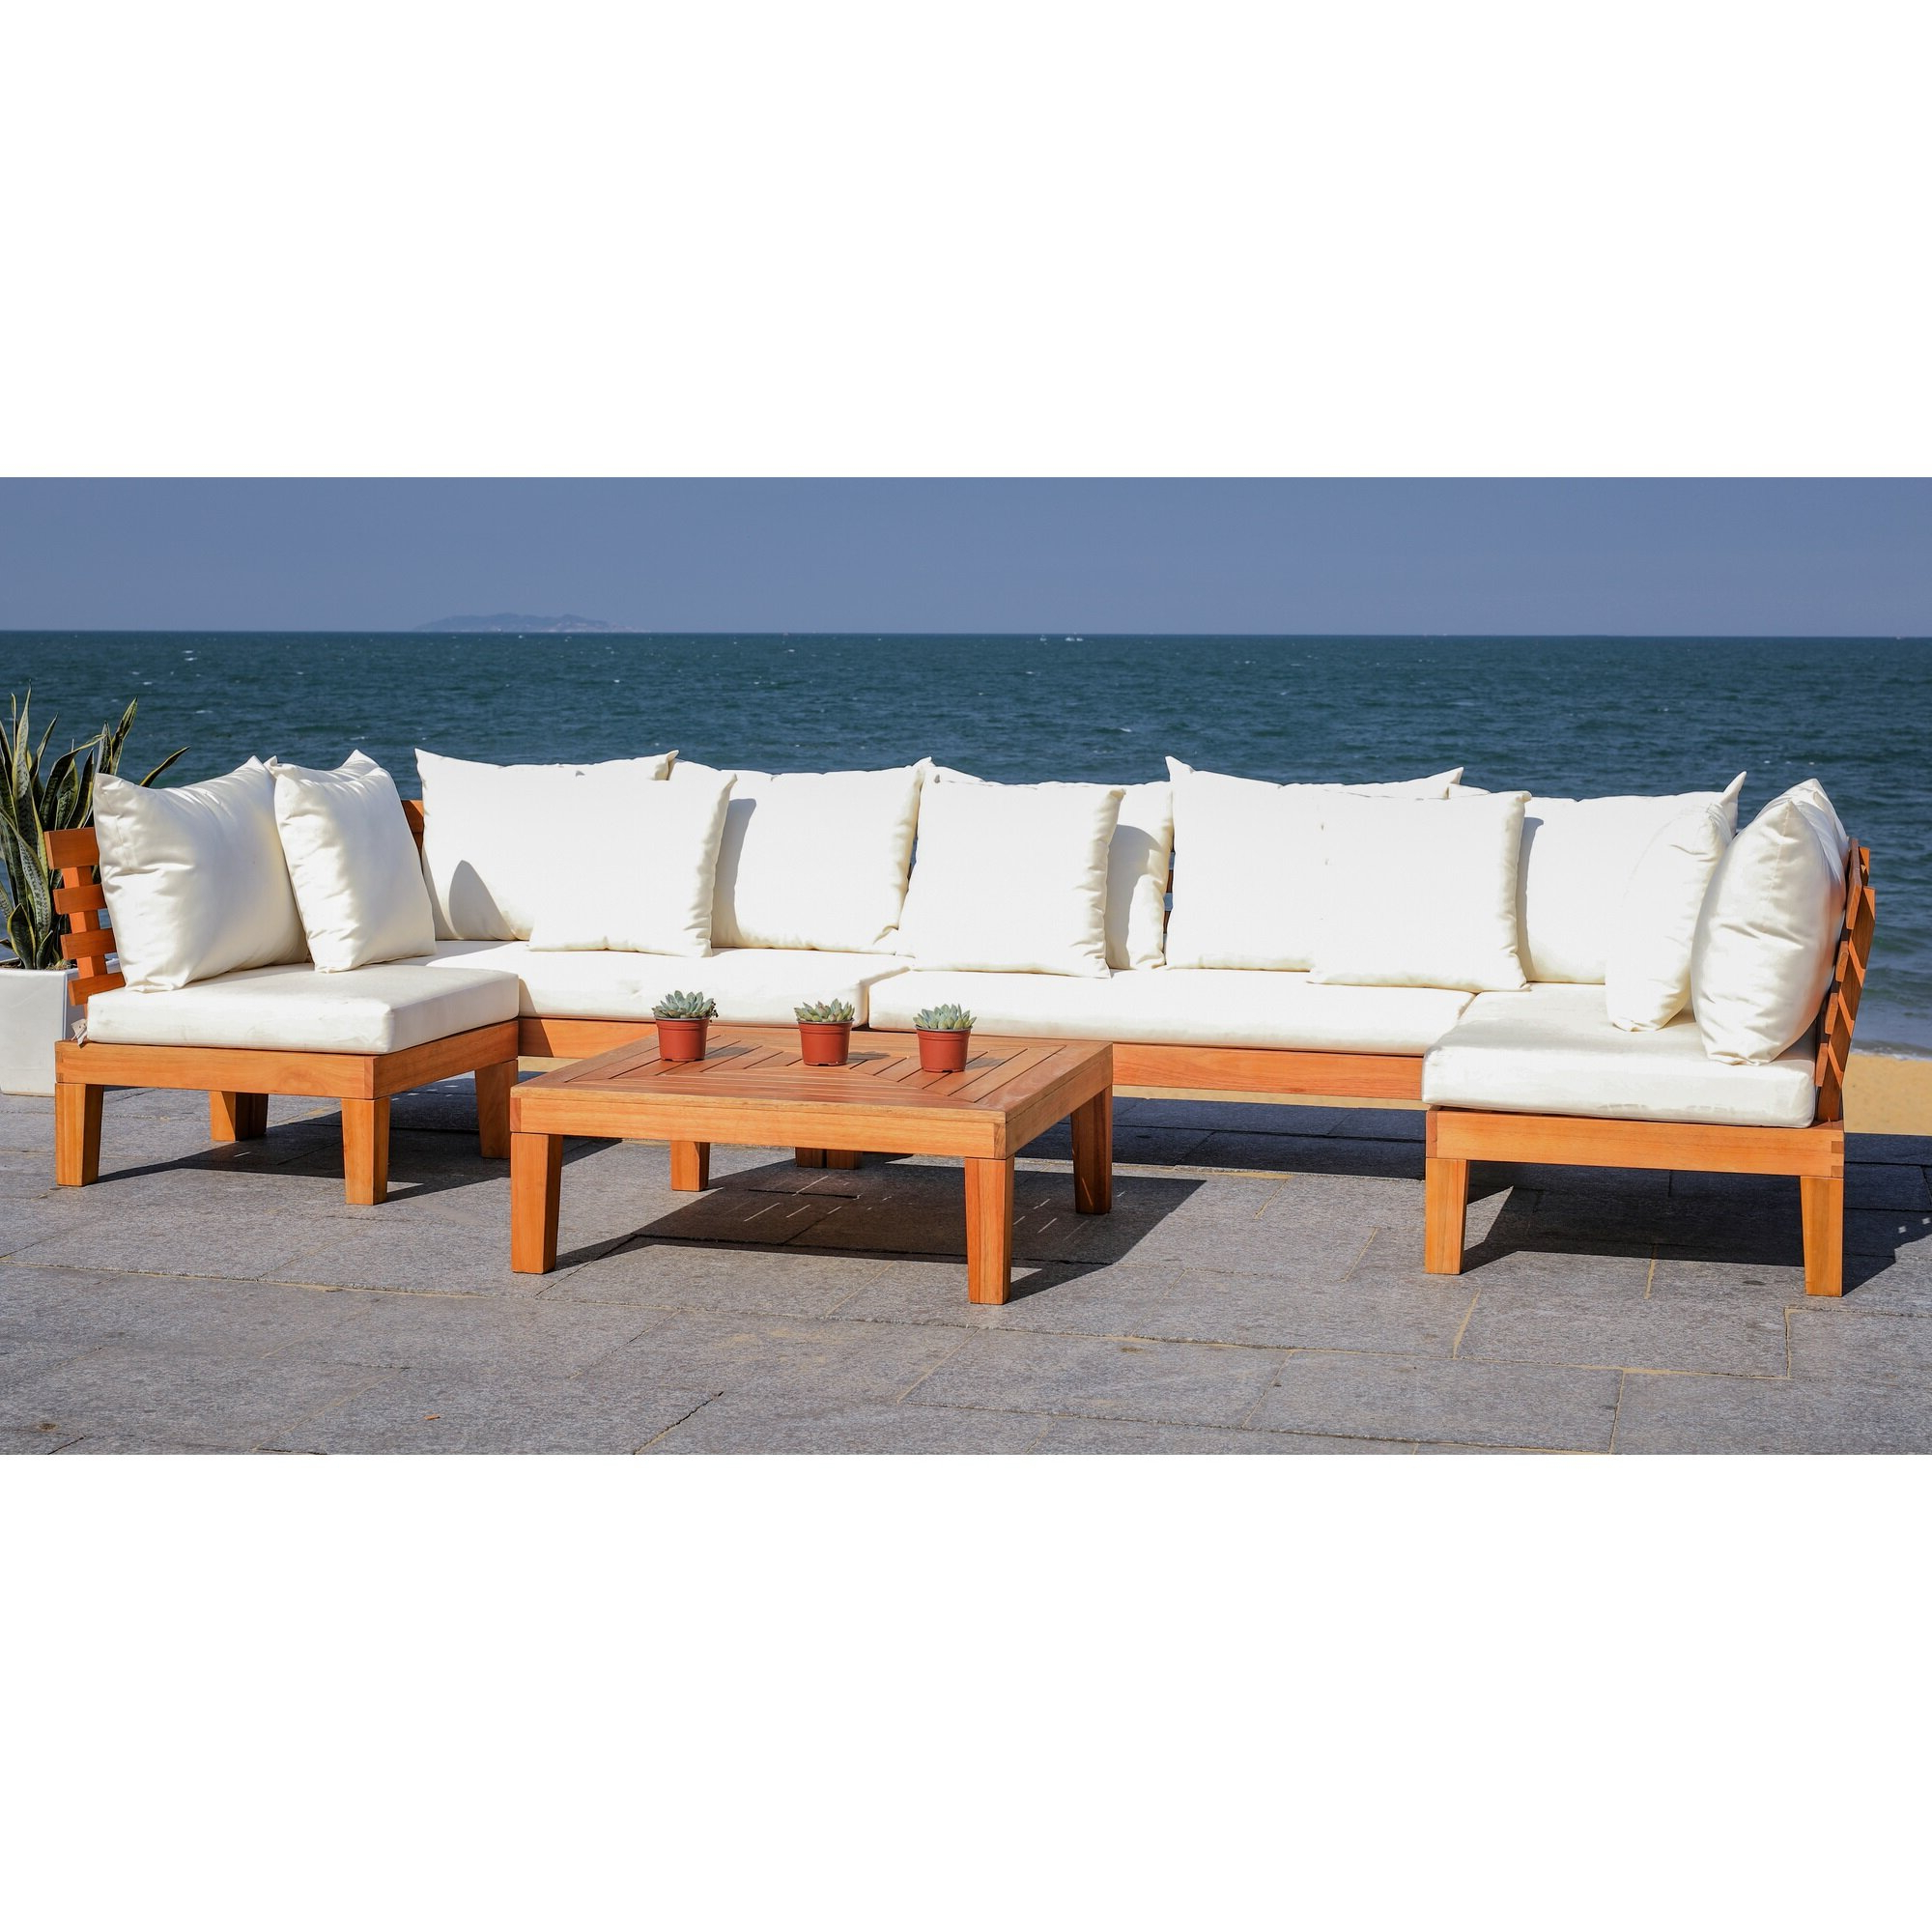 Most Popular Greta Living Patio Sectional With Cushions In Tess Corner Living Patio Sectionals With Cushions (View 10 of 20)